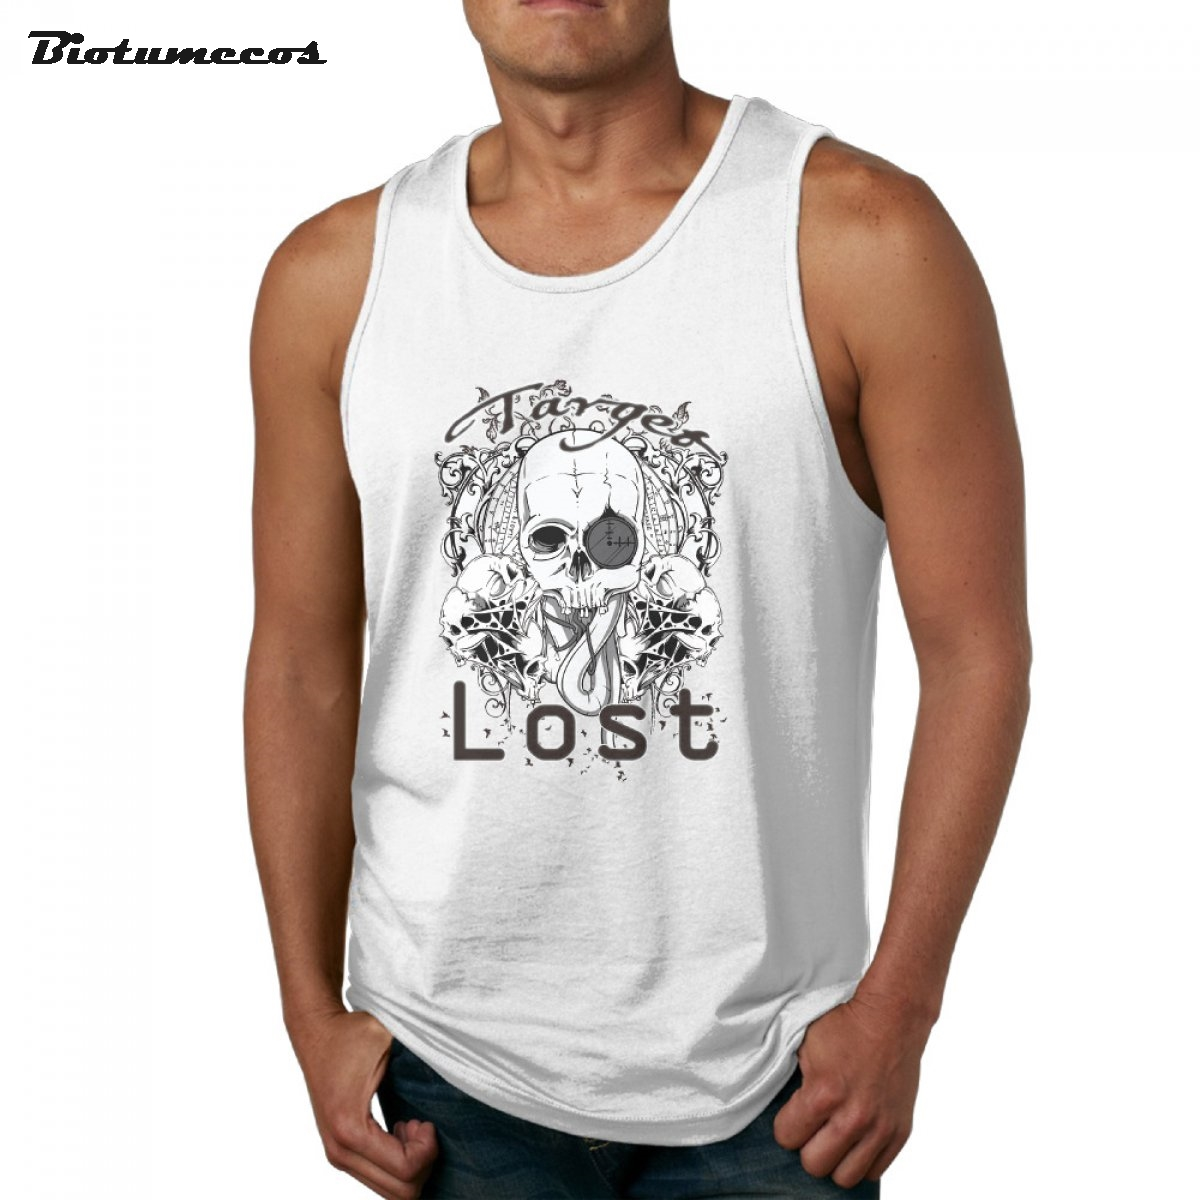 New Fashion Men Tank Tops Summer Target Lost Printed Male Retro Style Casual Vest MBXKL017